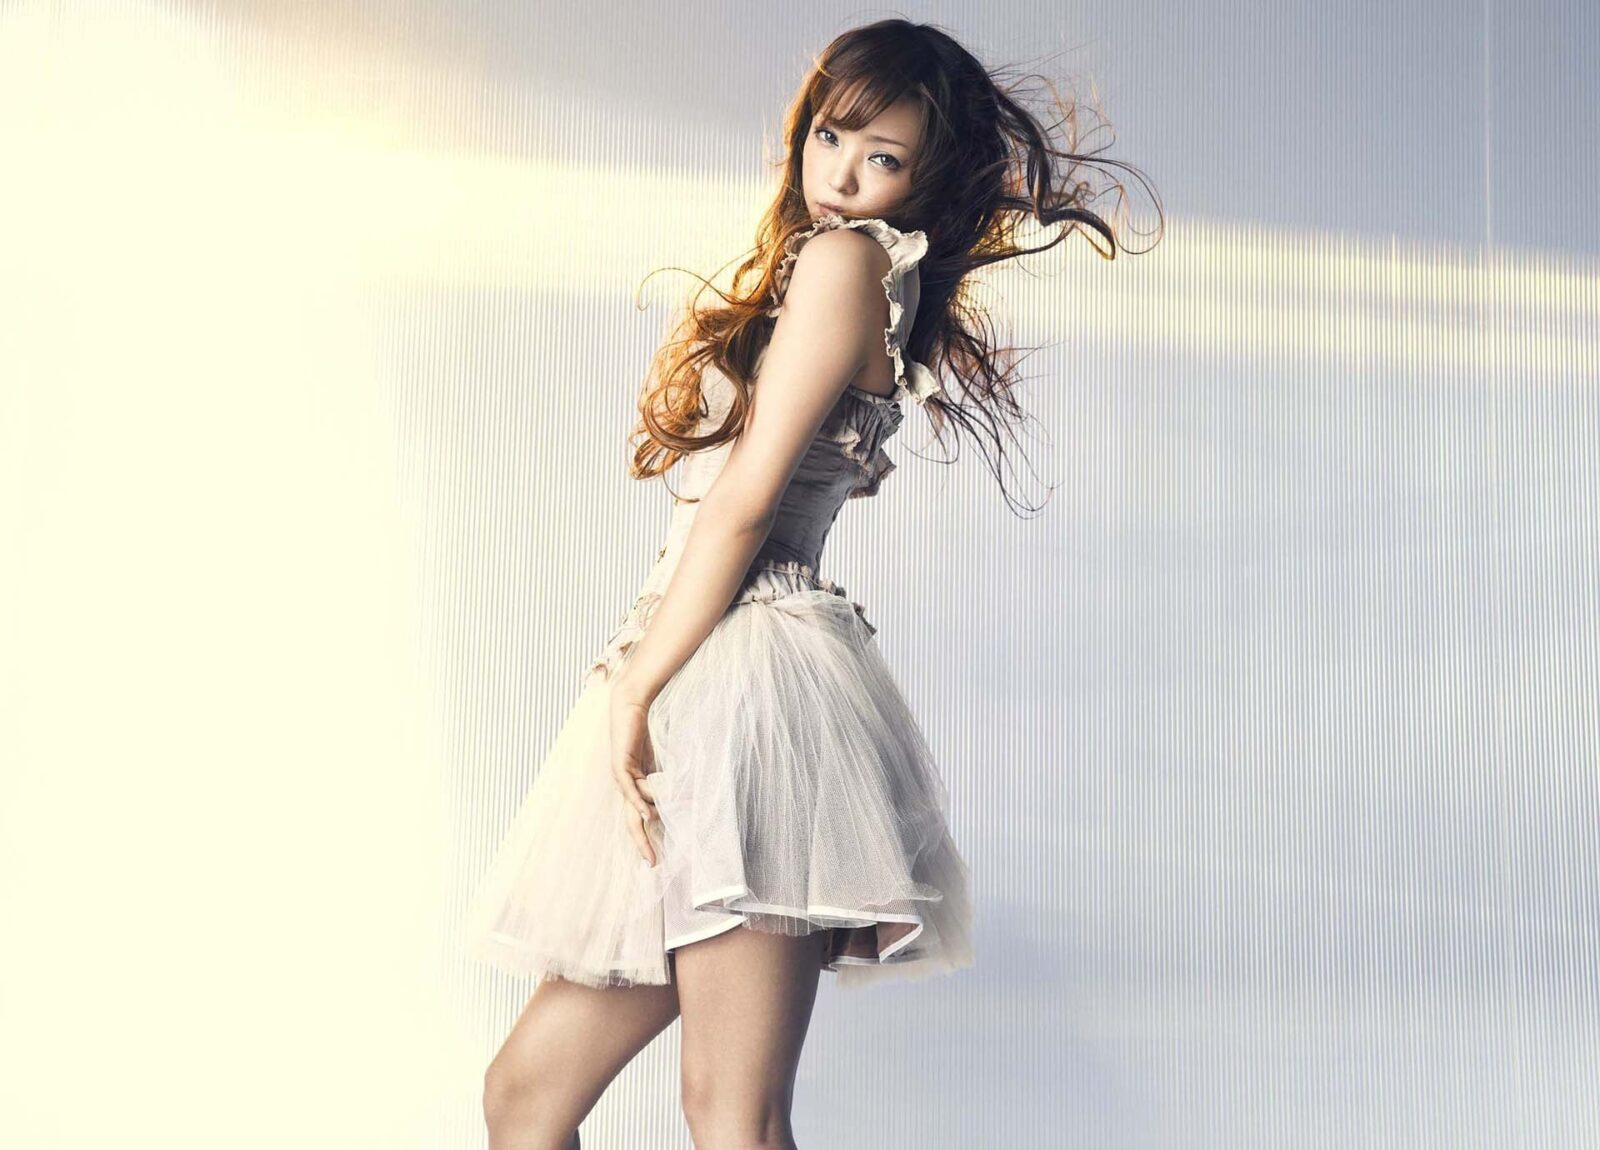 Wallpapers Hd Technology Namie Amuro Hd Wallpapers High Quality